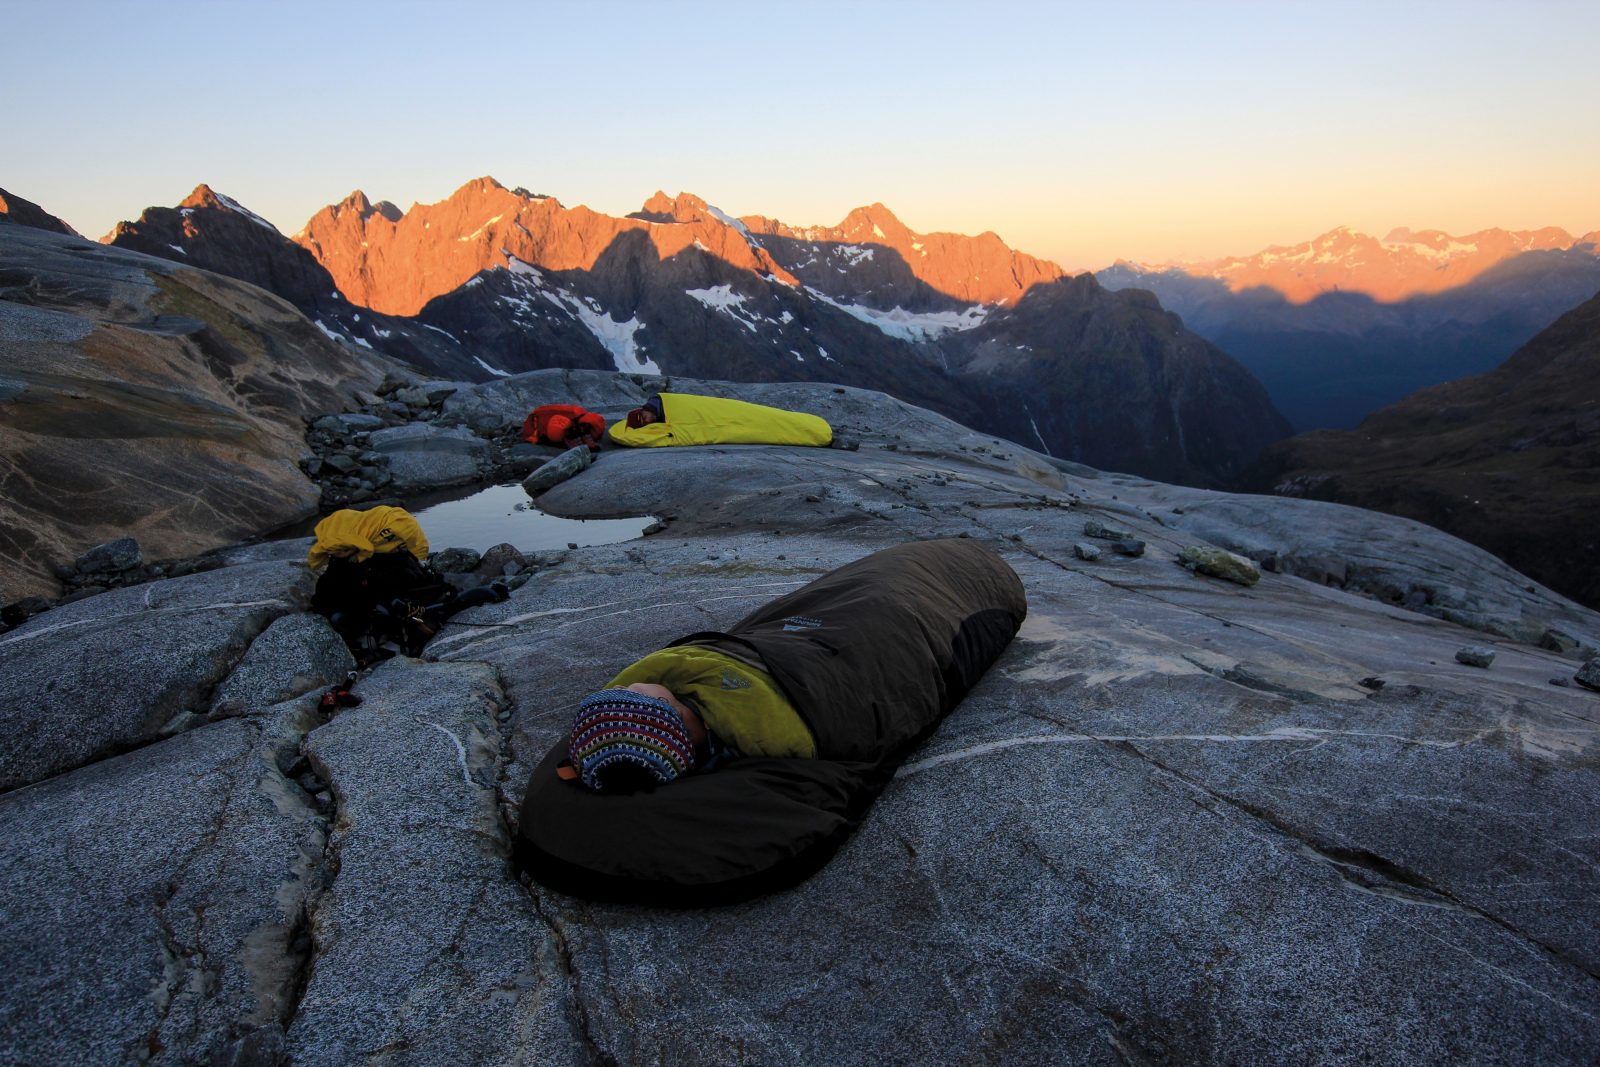 Finding a rock ledge flat enough to sleep on so high up a mountain is a godsend for climbers, especially at the end of a long day's climbing. At their feet is the mesmerising view over Moraine Creek and the Hollyford Valley.